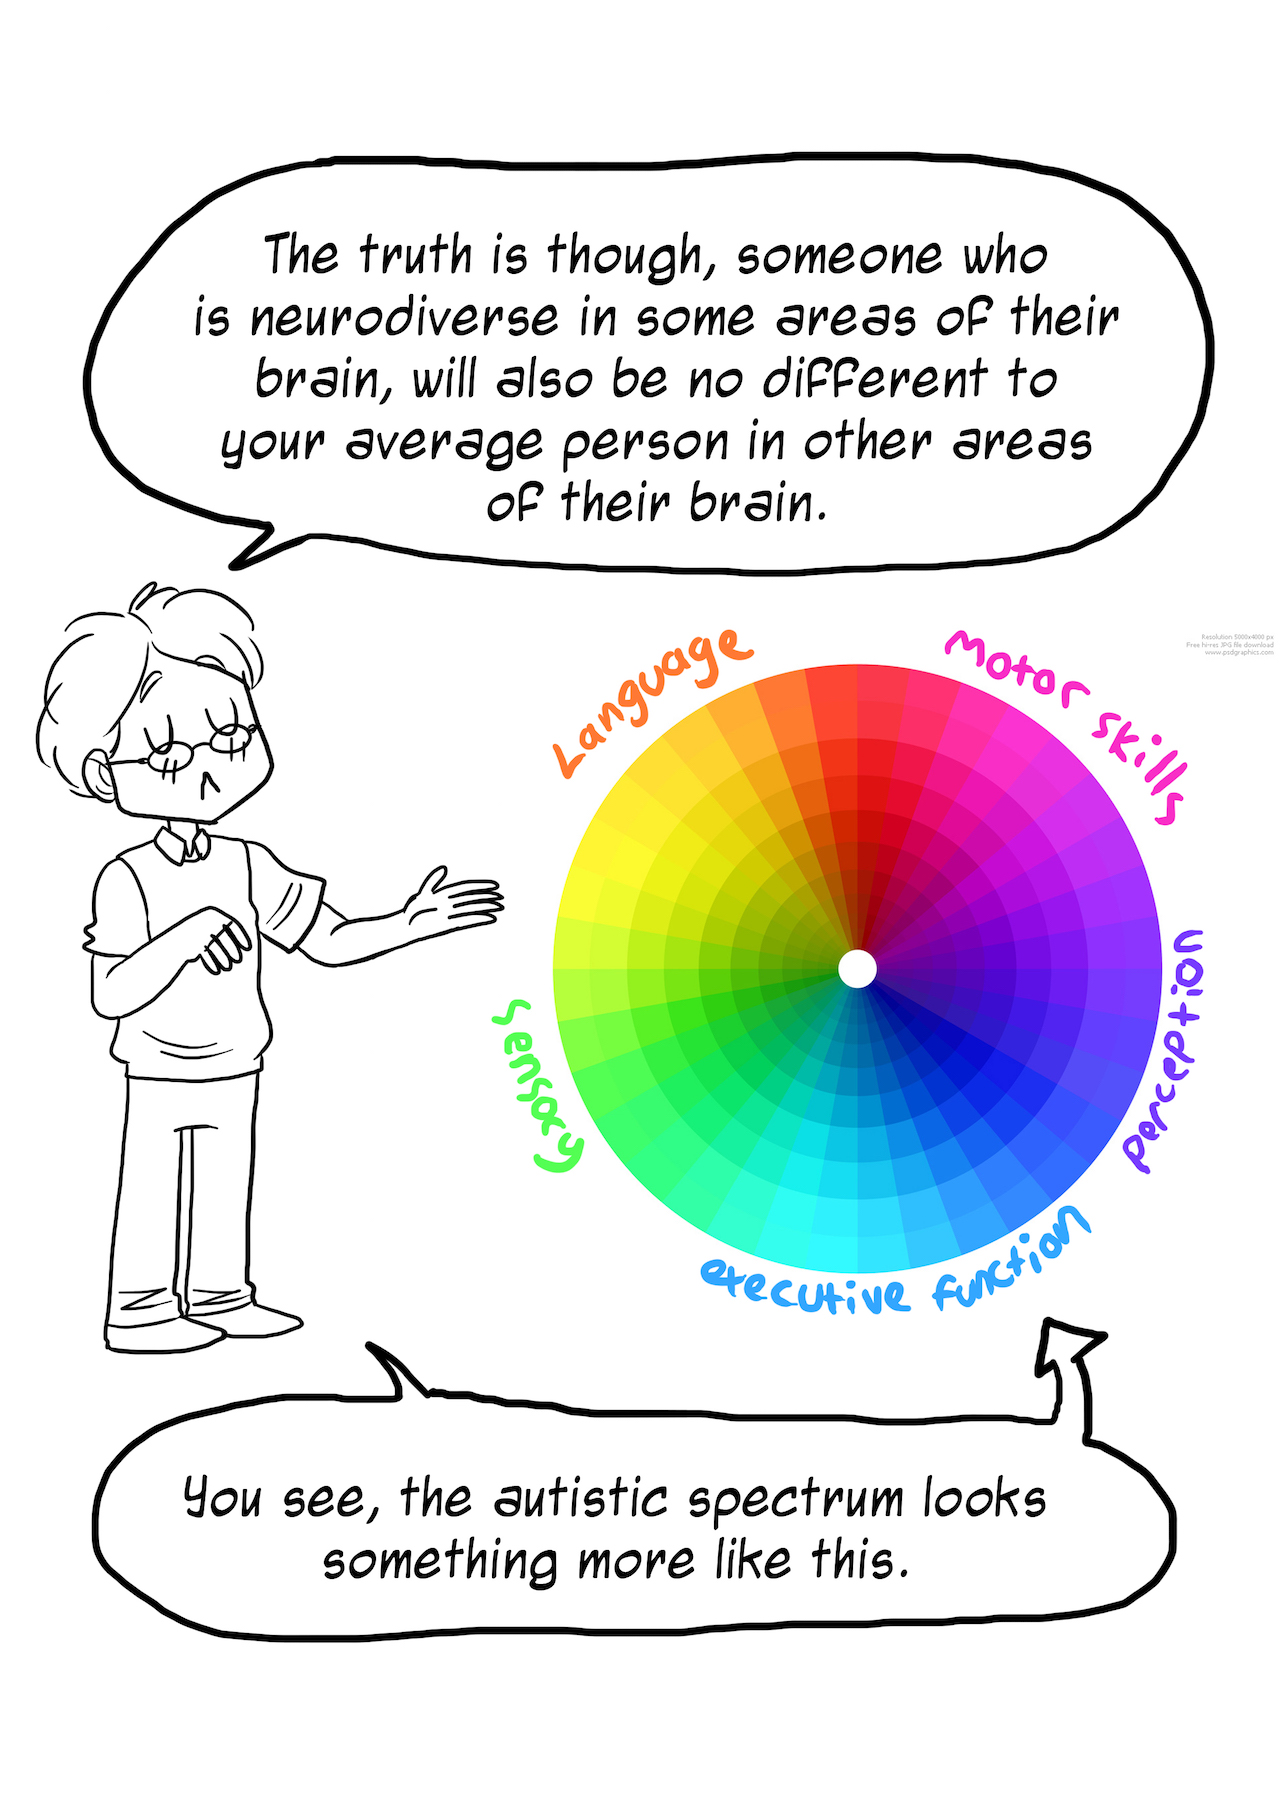 Rebecca Burgess Comic Redesigns The Autism Spectrum